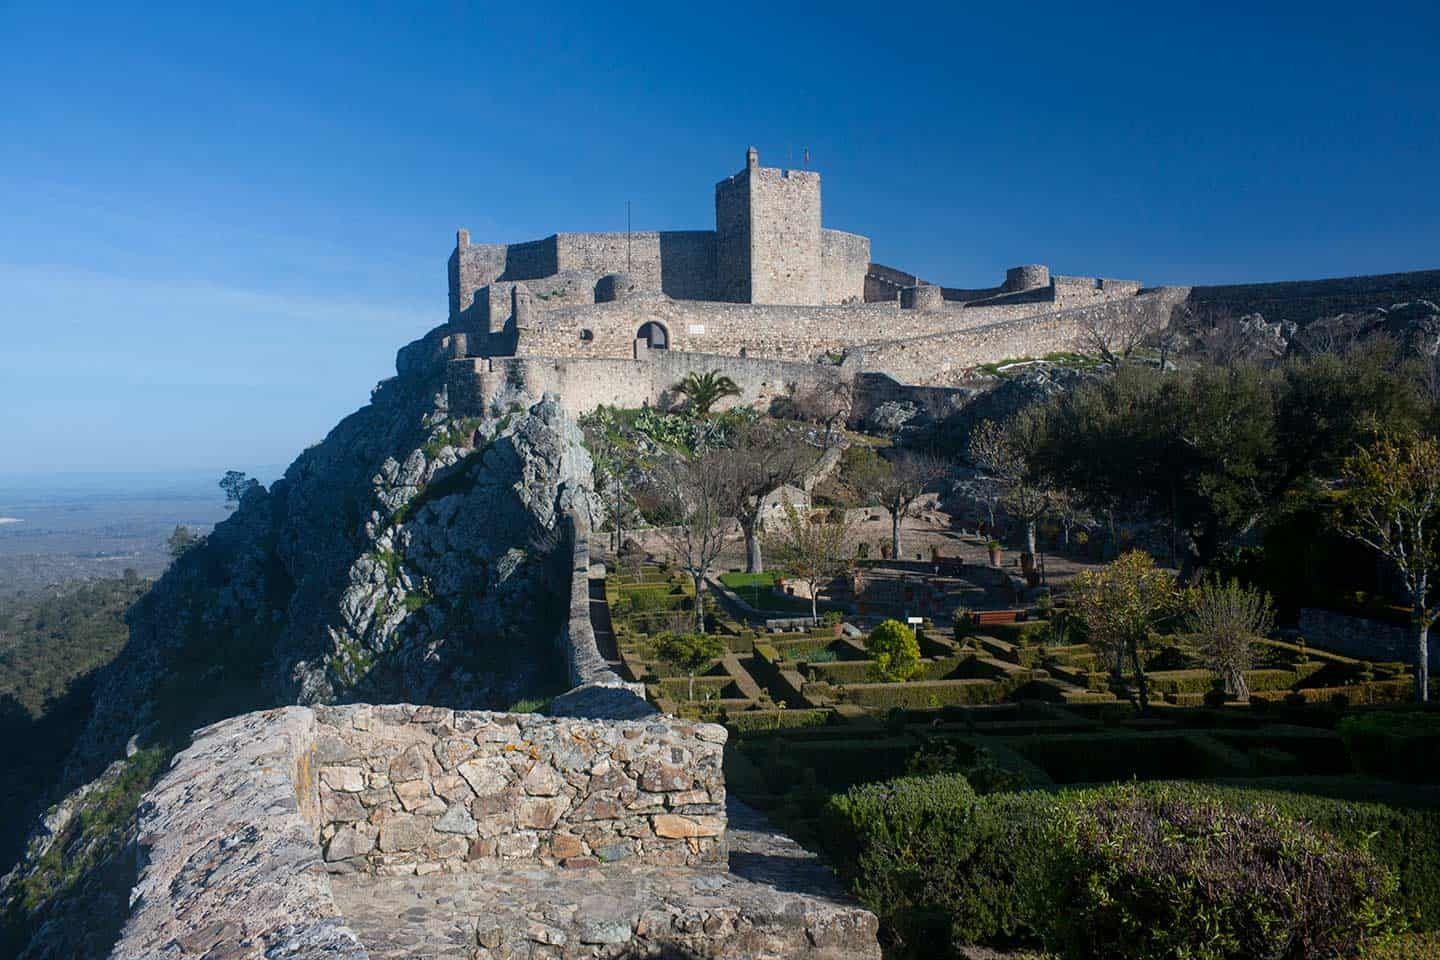 Image of MArvao Castle and gardens below